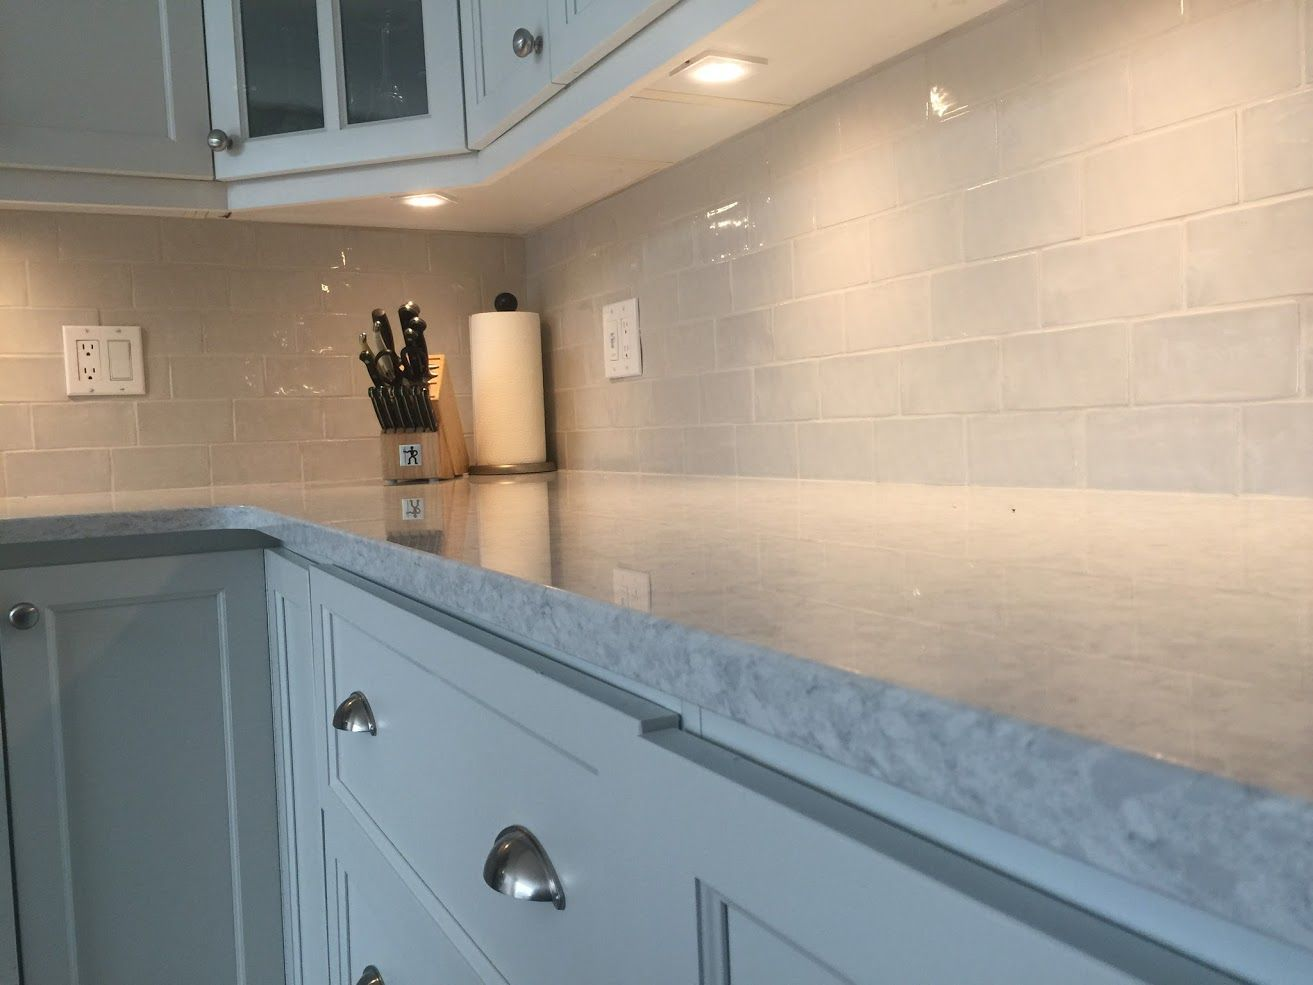 Backsplash Undercabinet Lighting From Lowes And New Countertops By Costcocanada New Countertops Under Cabinet Lighting Countertops